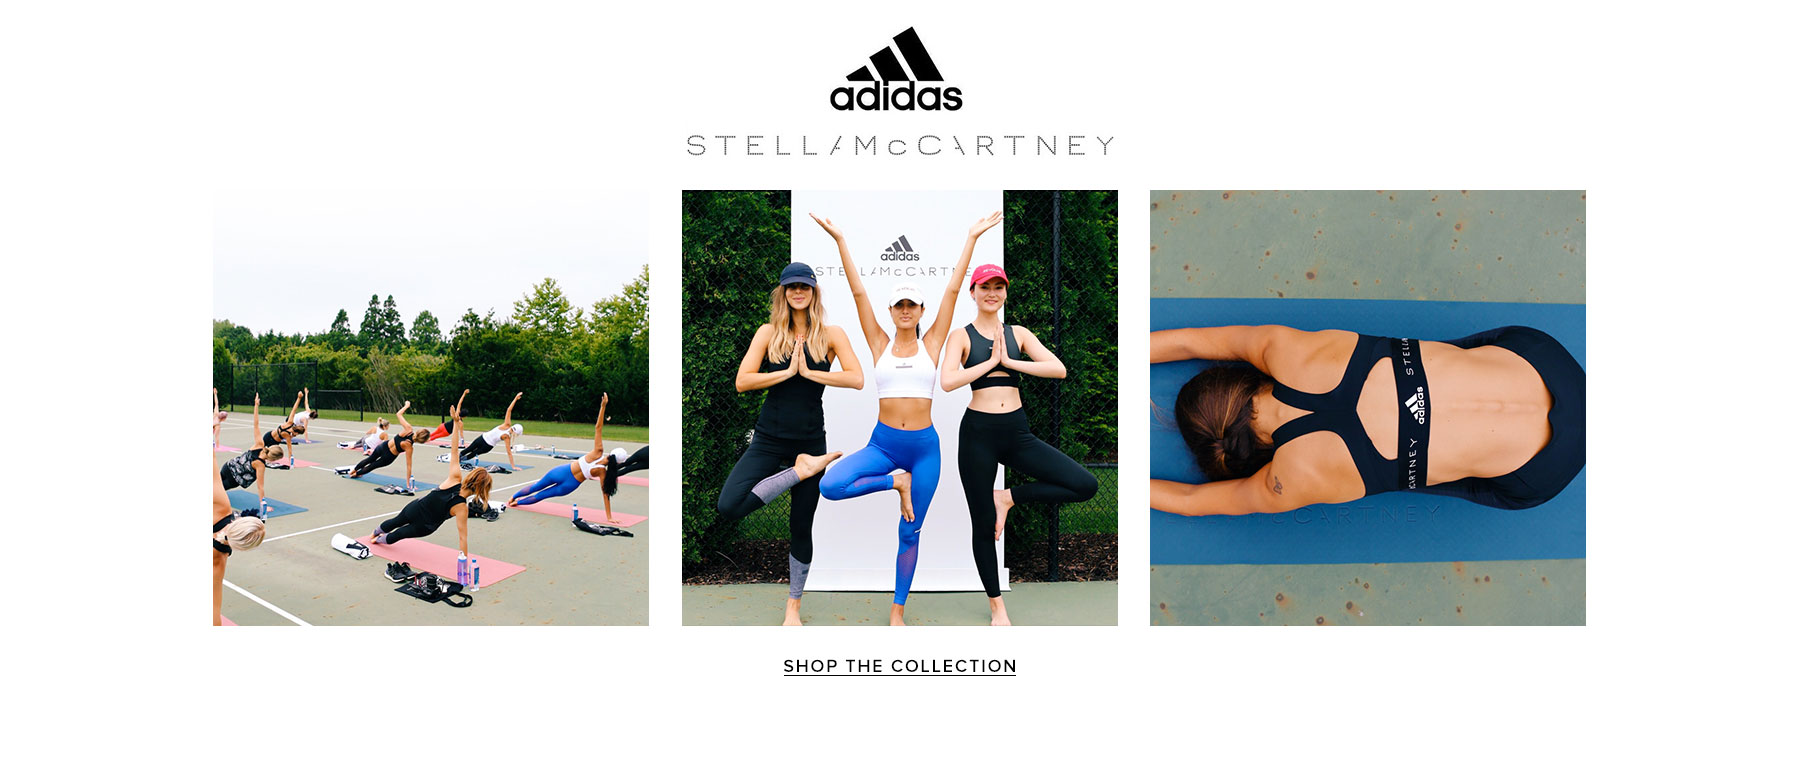 Adidas x Stella McCartney. Shop The Collection